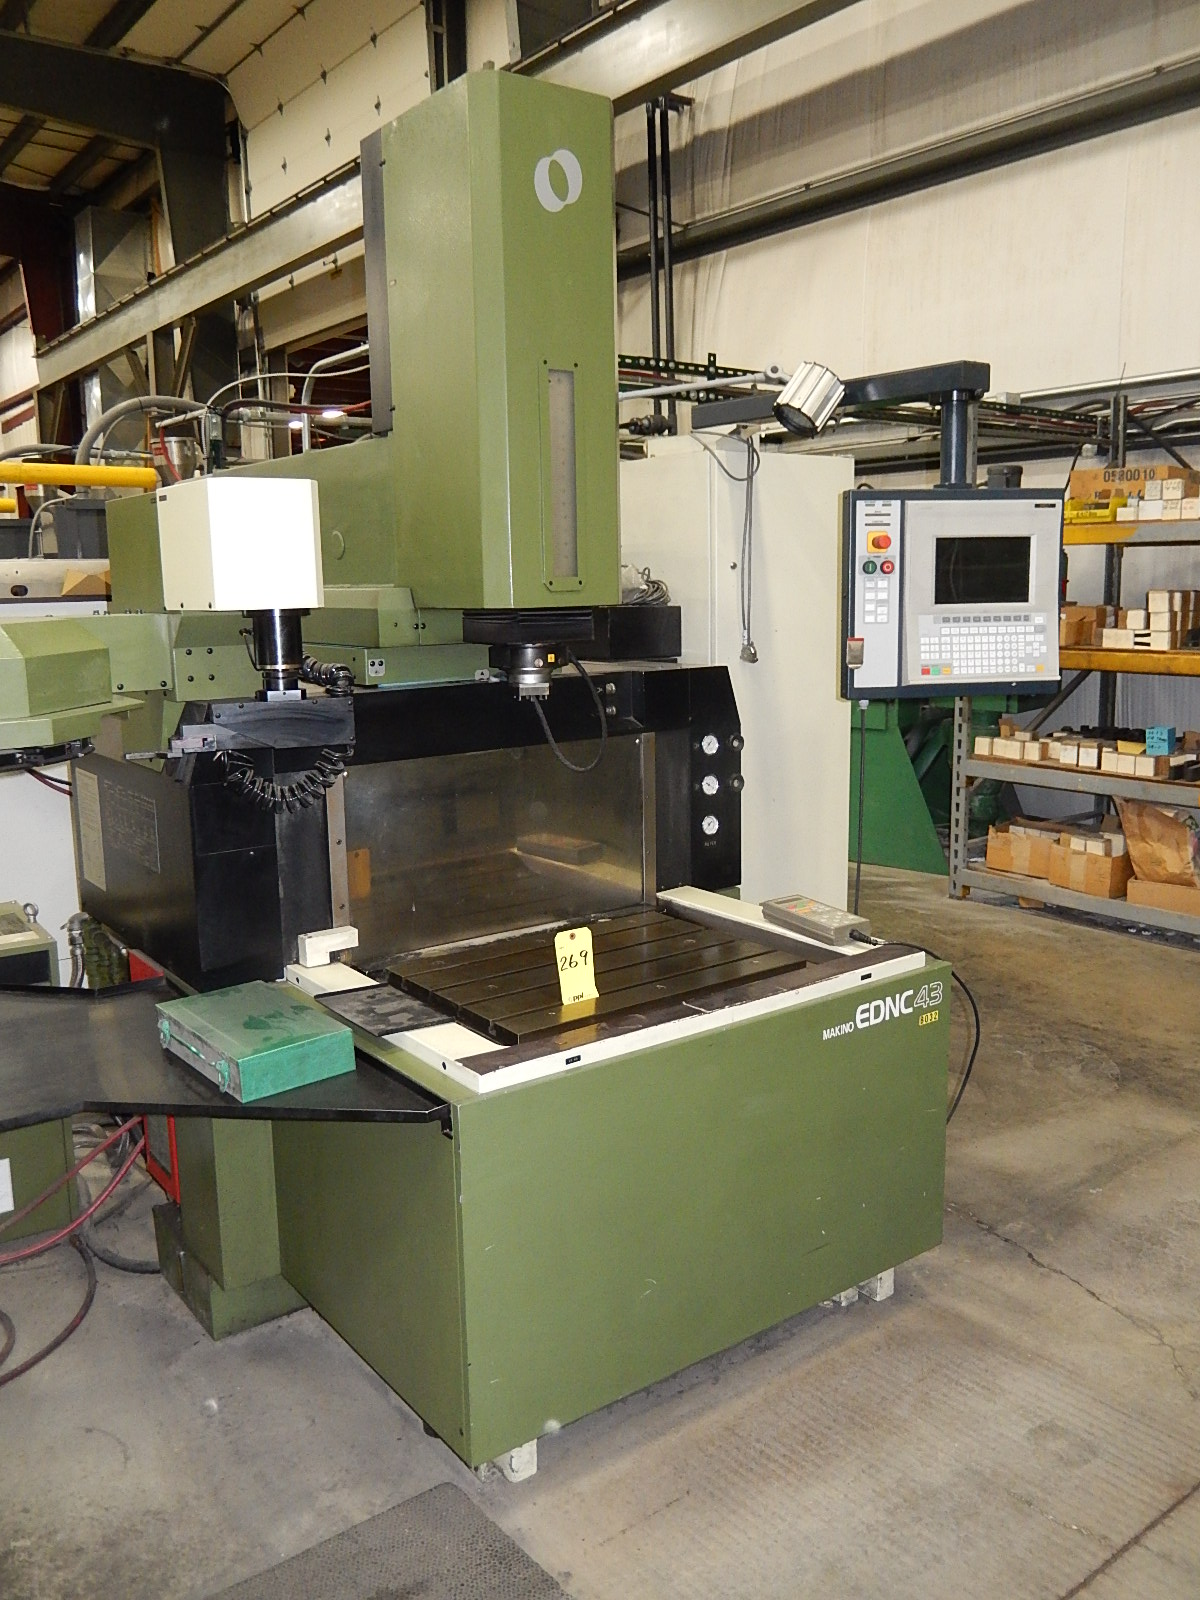 Lot 269 - MAKINO 4-AXIS CNC SINKER ELECTRICAL DISCHARGE MACHINE, MODEL EDNC-